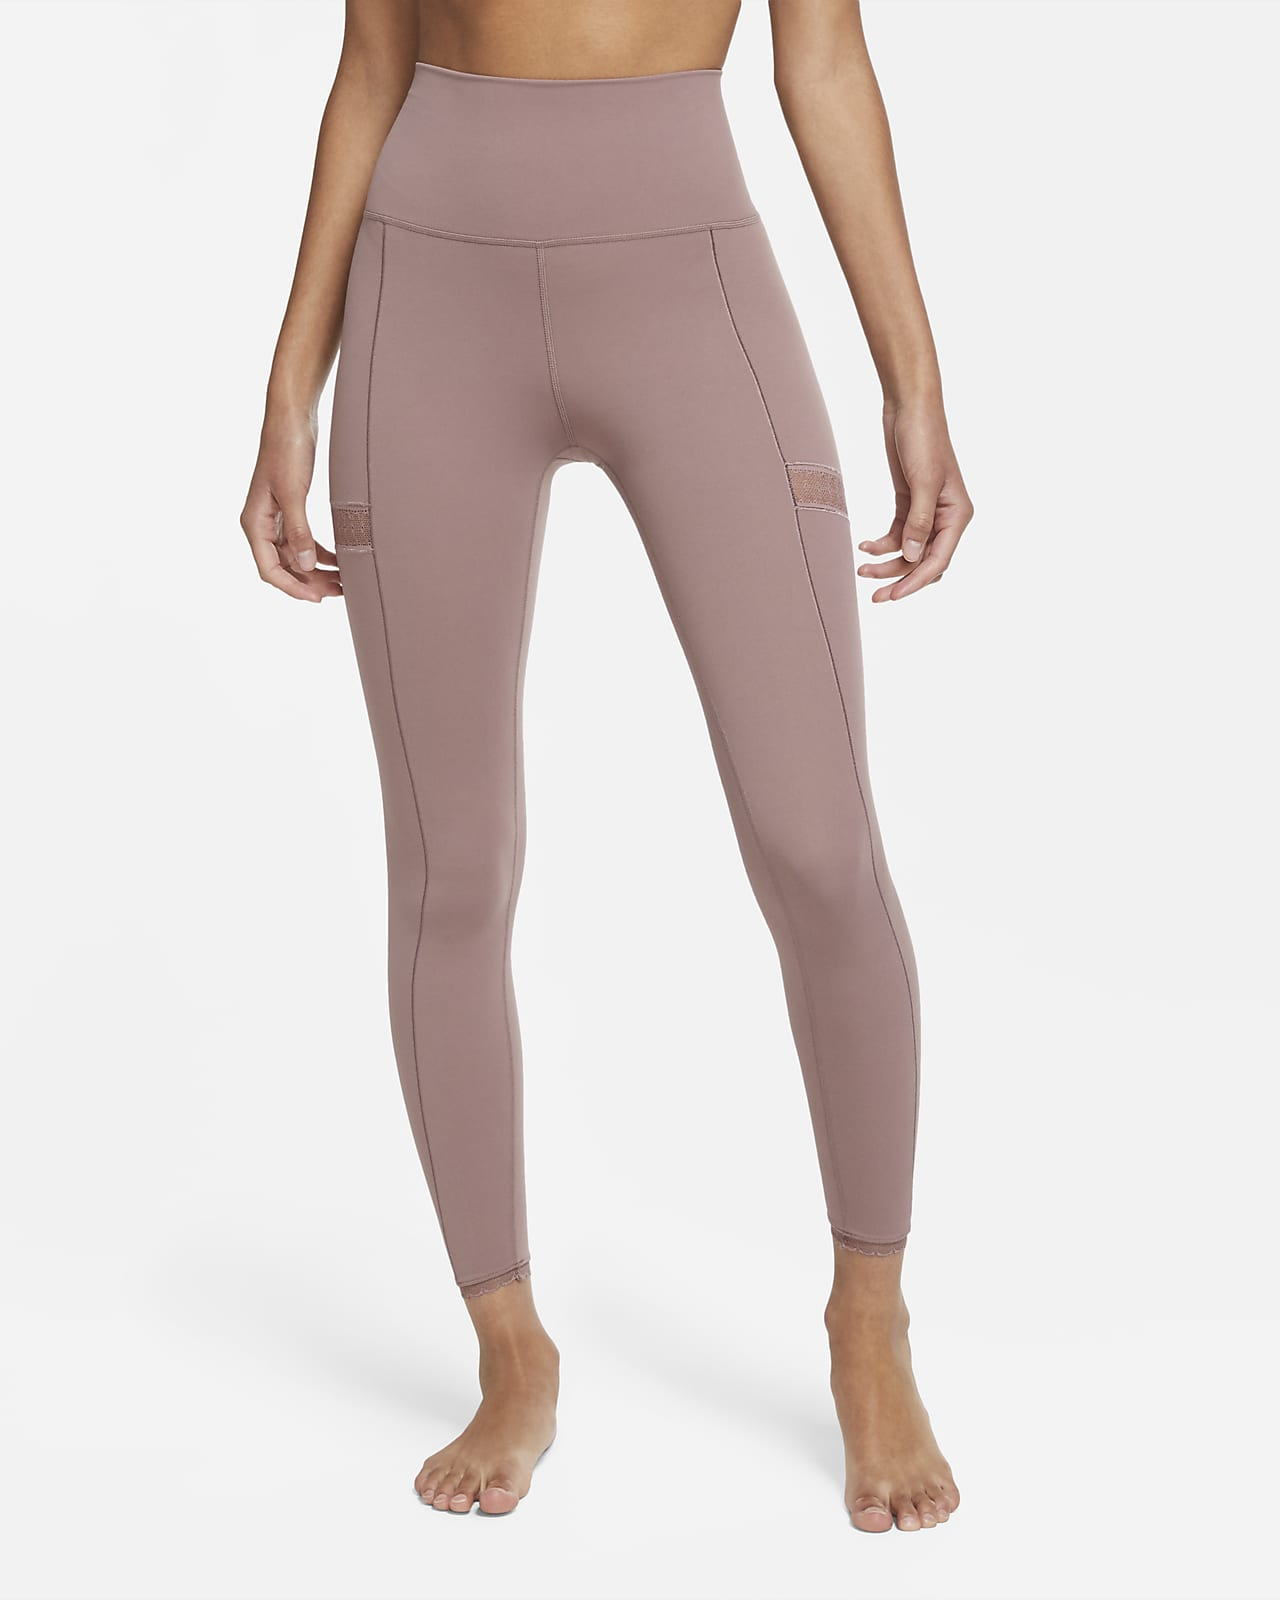 Nike Yoga tights i 7/8-lengde til dame